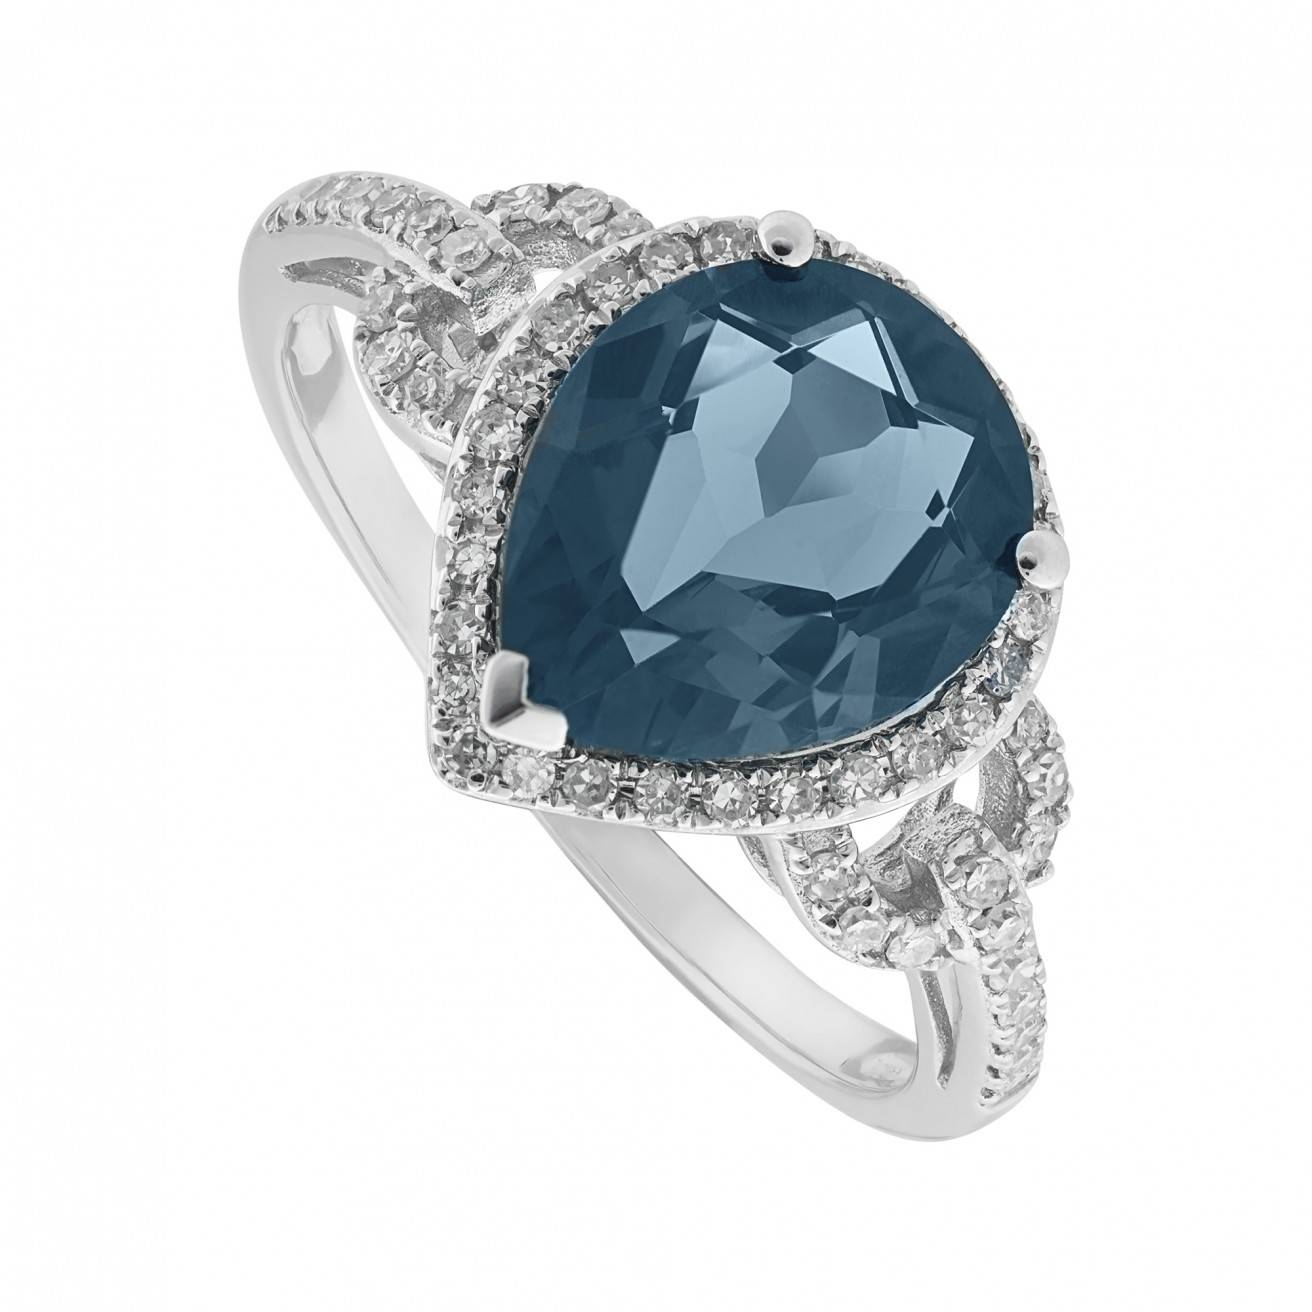 Gemstone Jewellery Pertaining To London Gold Engagement Rings (View 5 of 15)